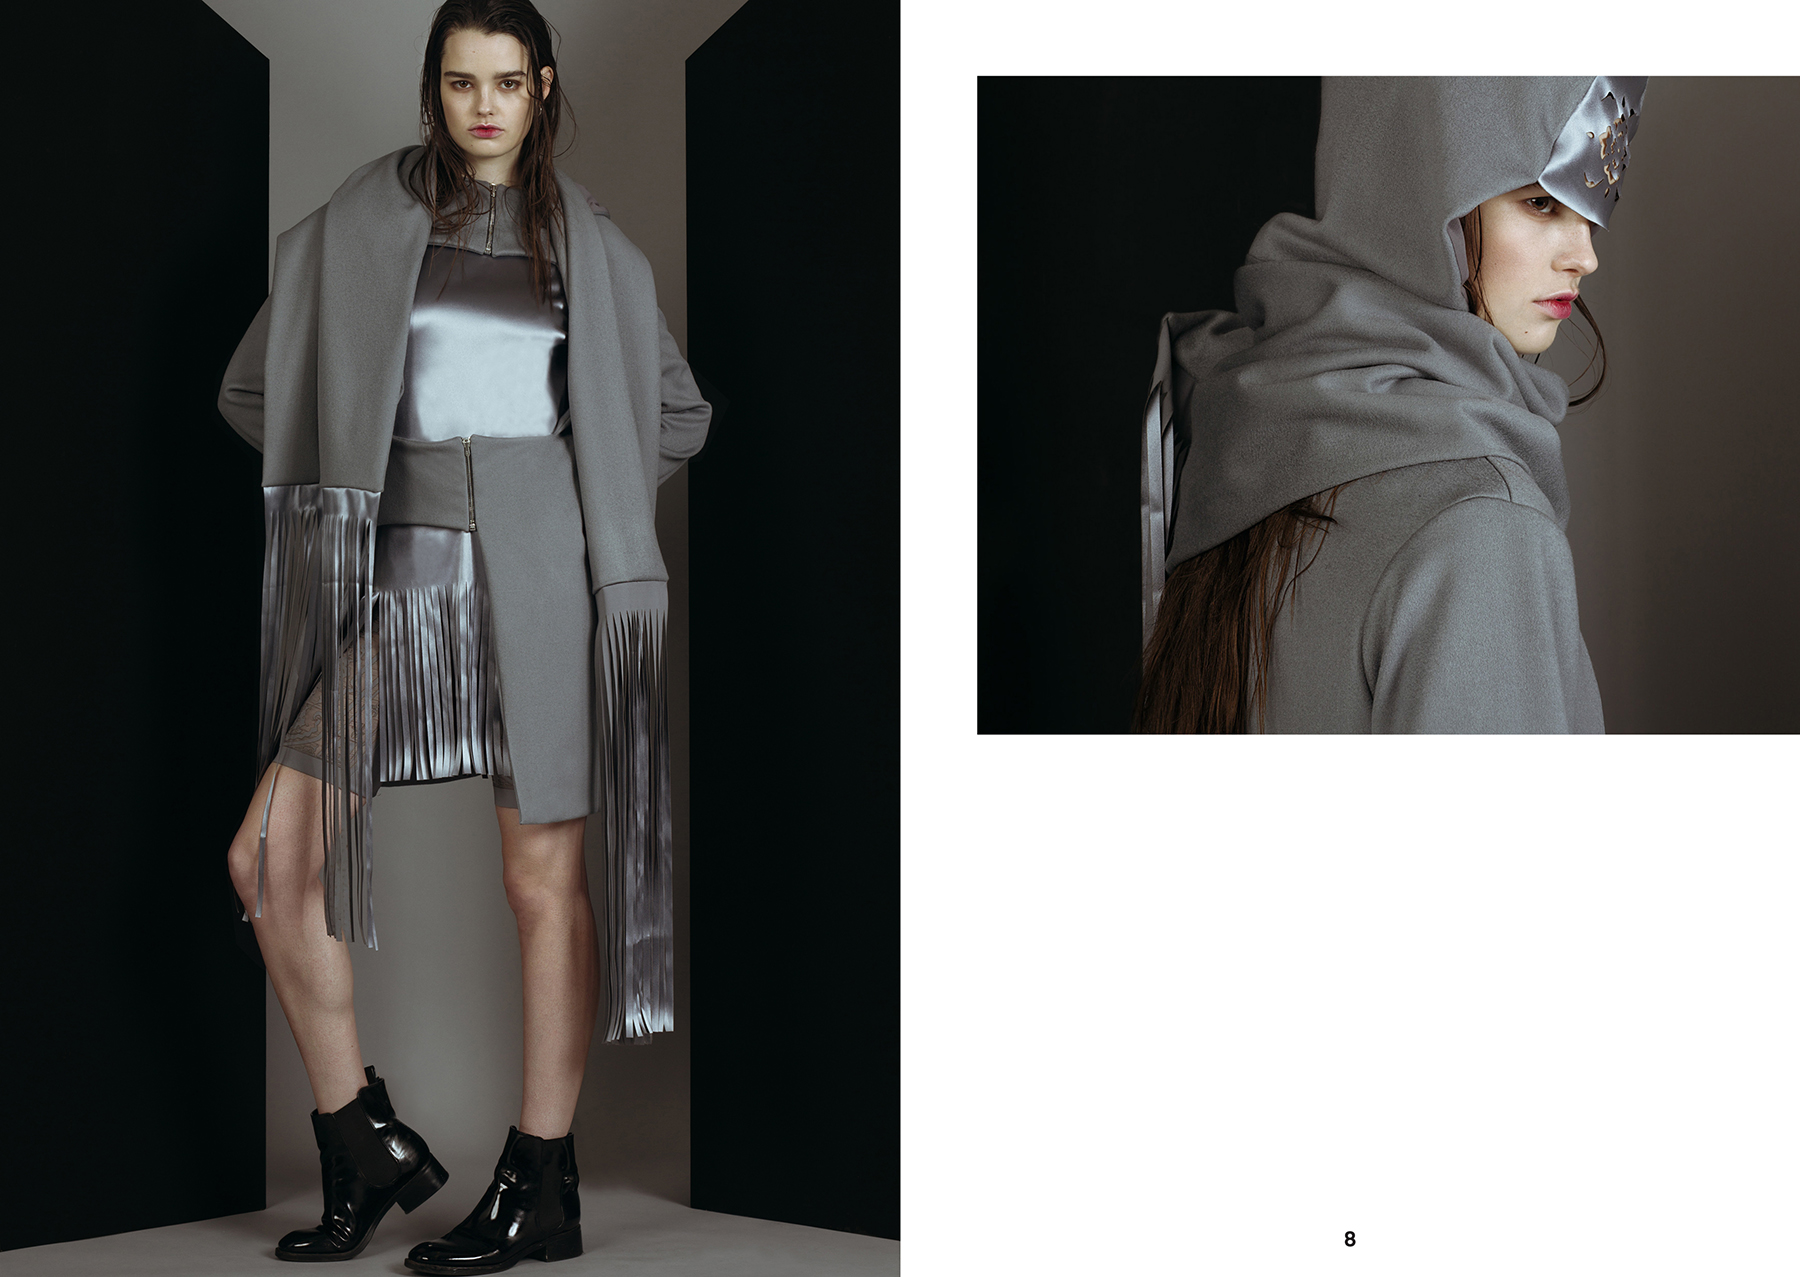 aw15_lookbook_digital_HIRES-5